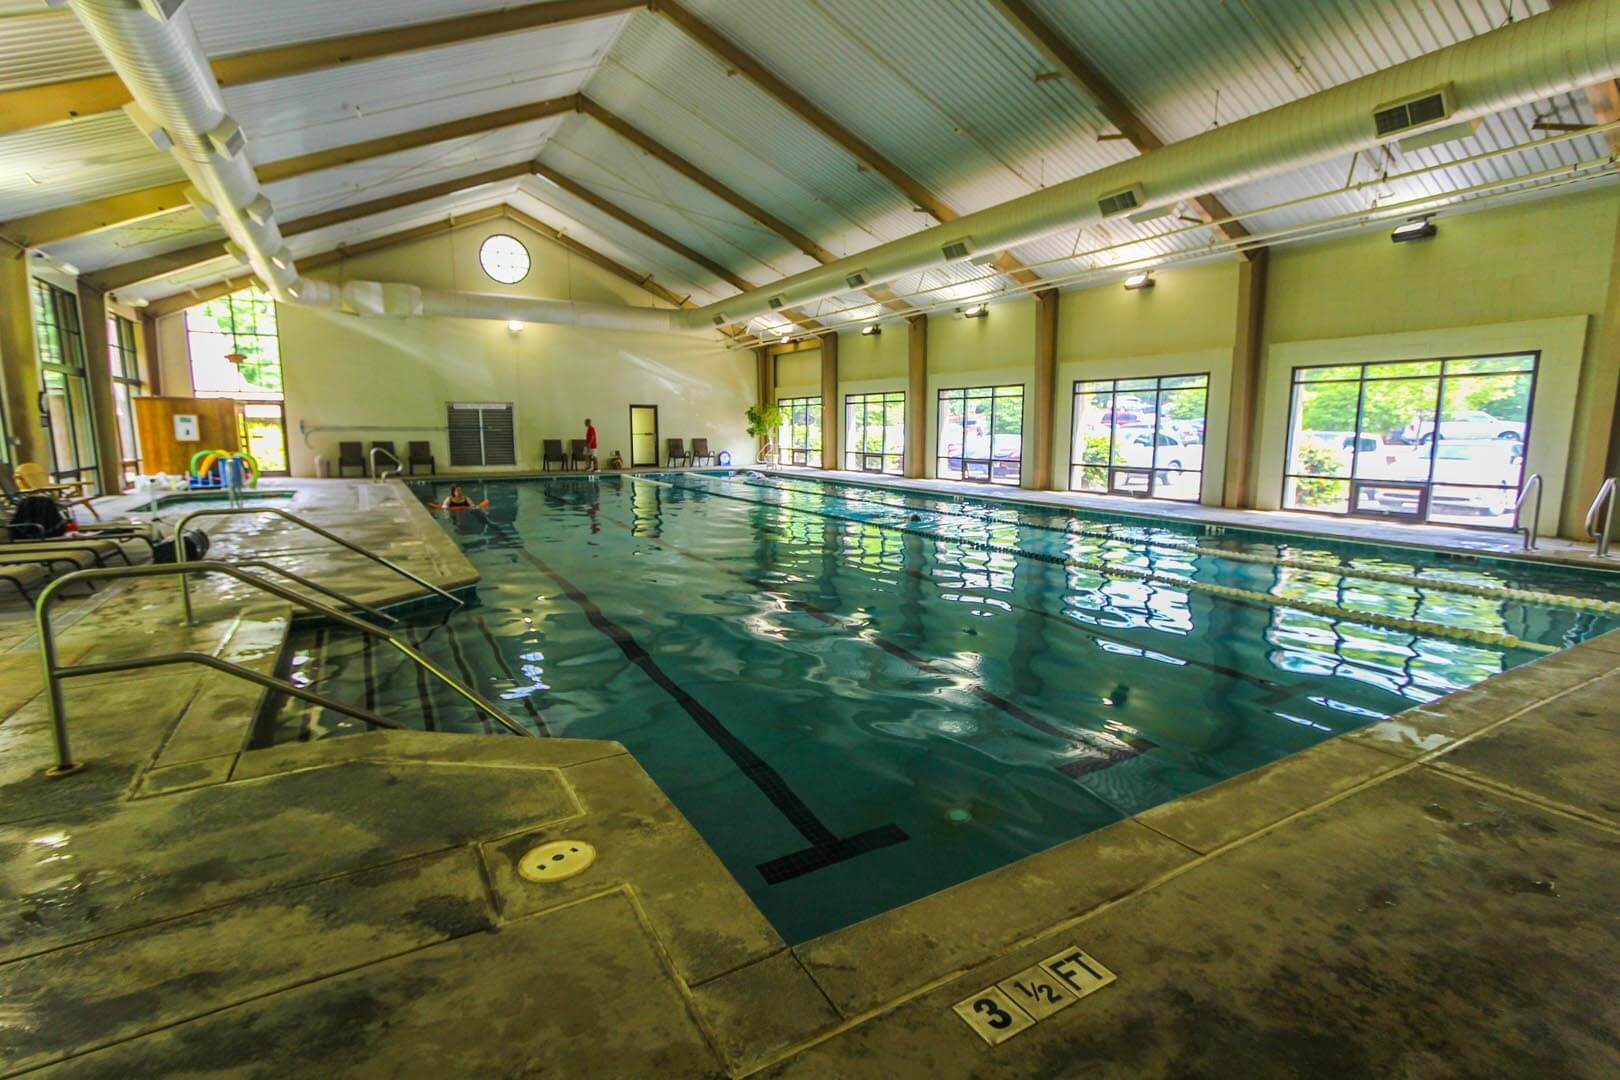 An expansive indoor swimming pool at VRI's Golf Club Villas in Marble Hill, Georgia.